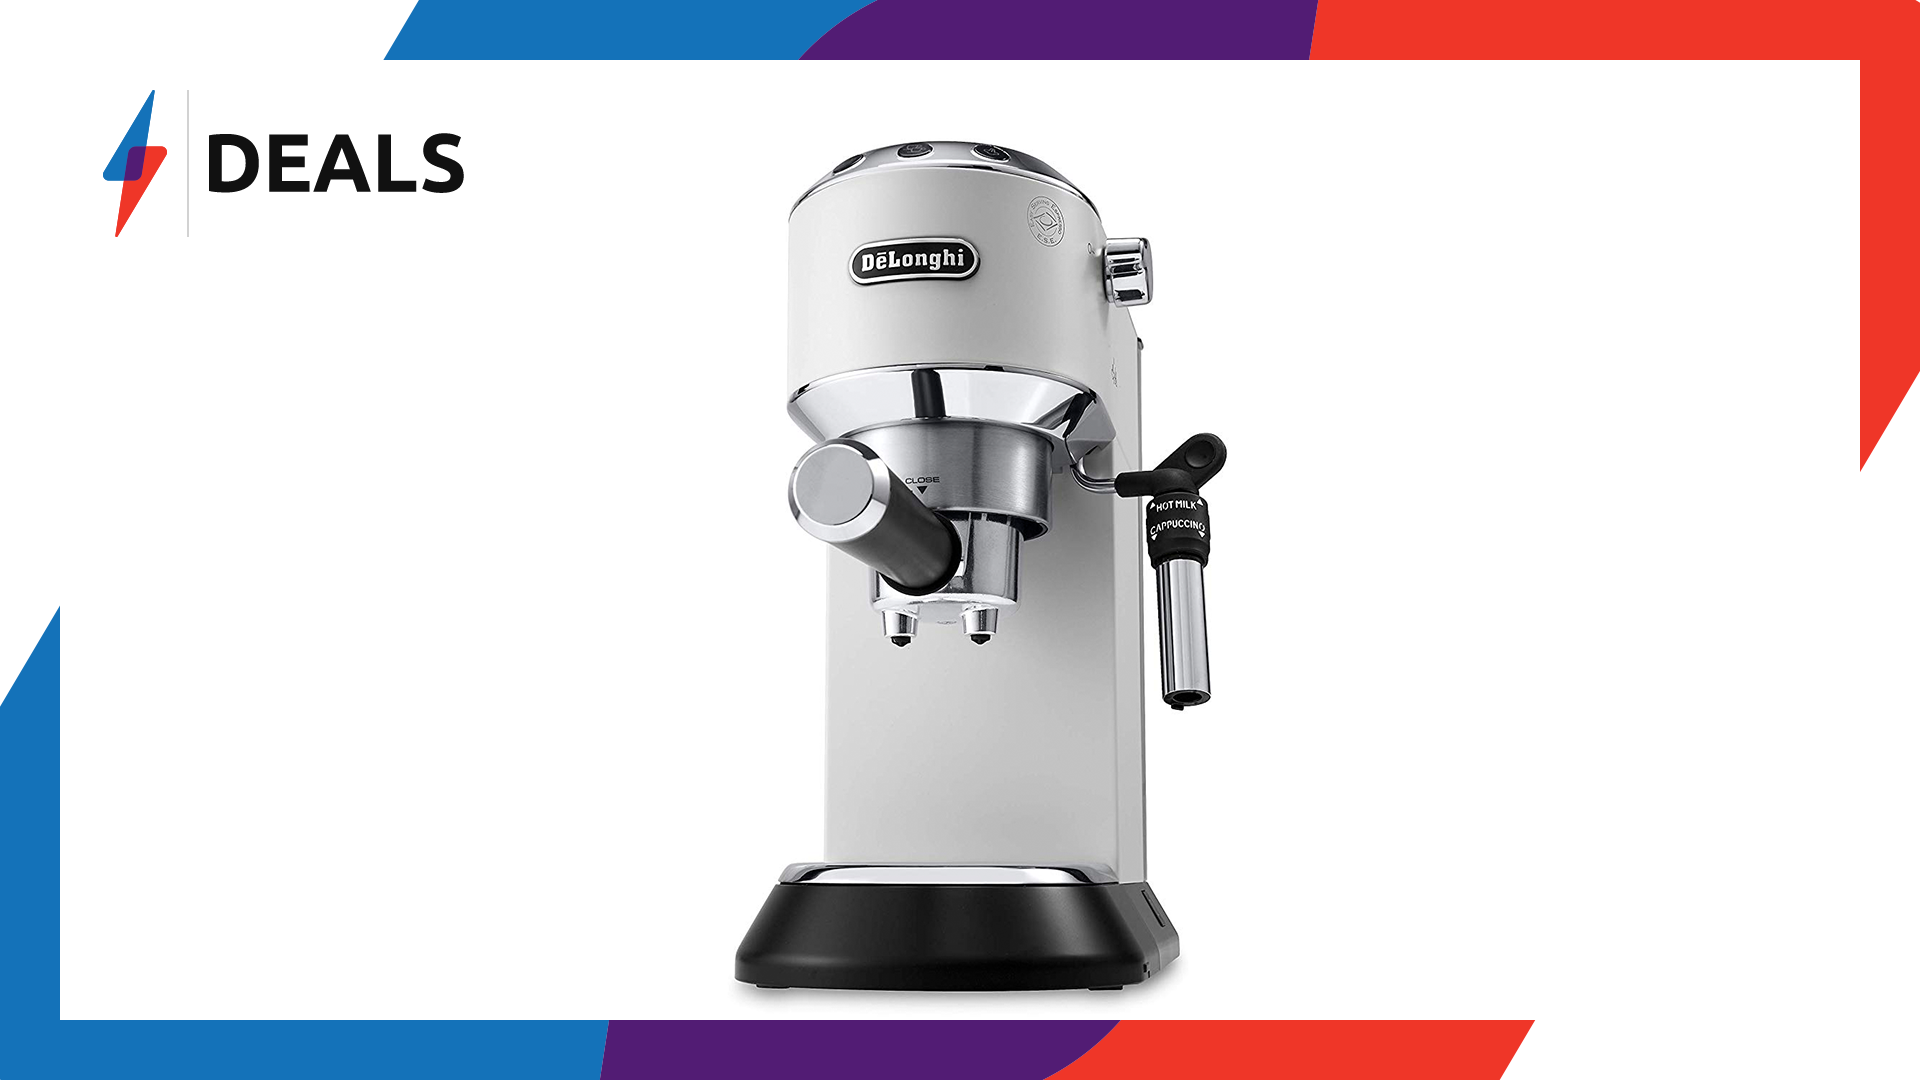 Wake up and smell the deals — Save £80 on this De'Longhi coffee machine